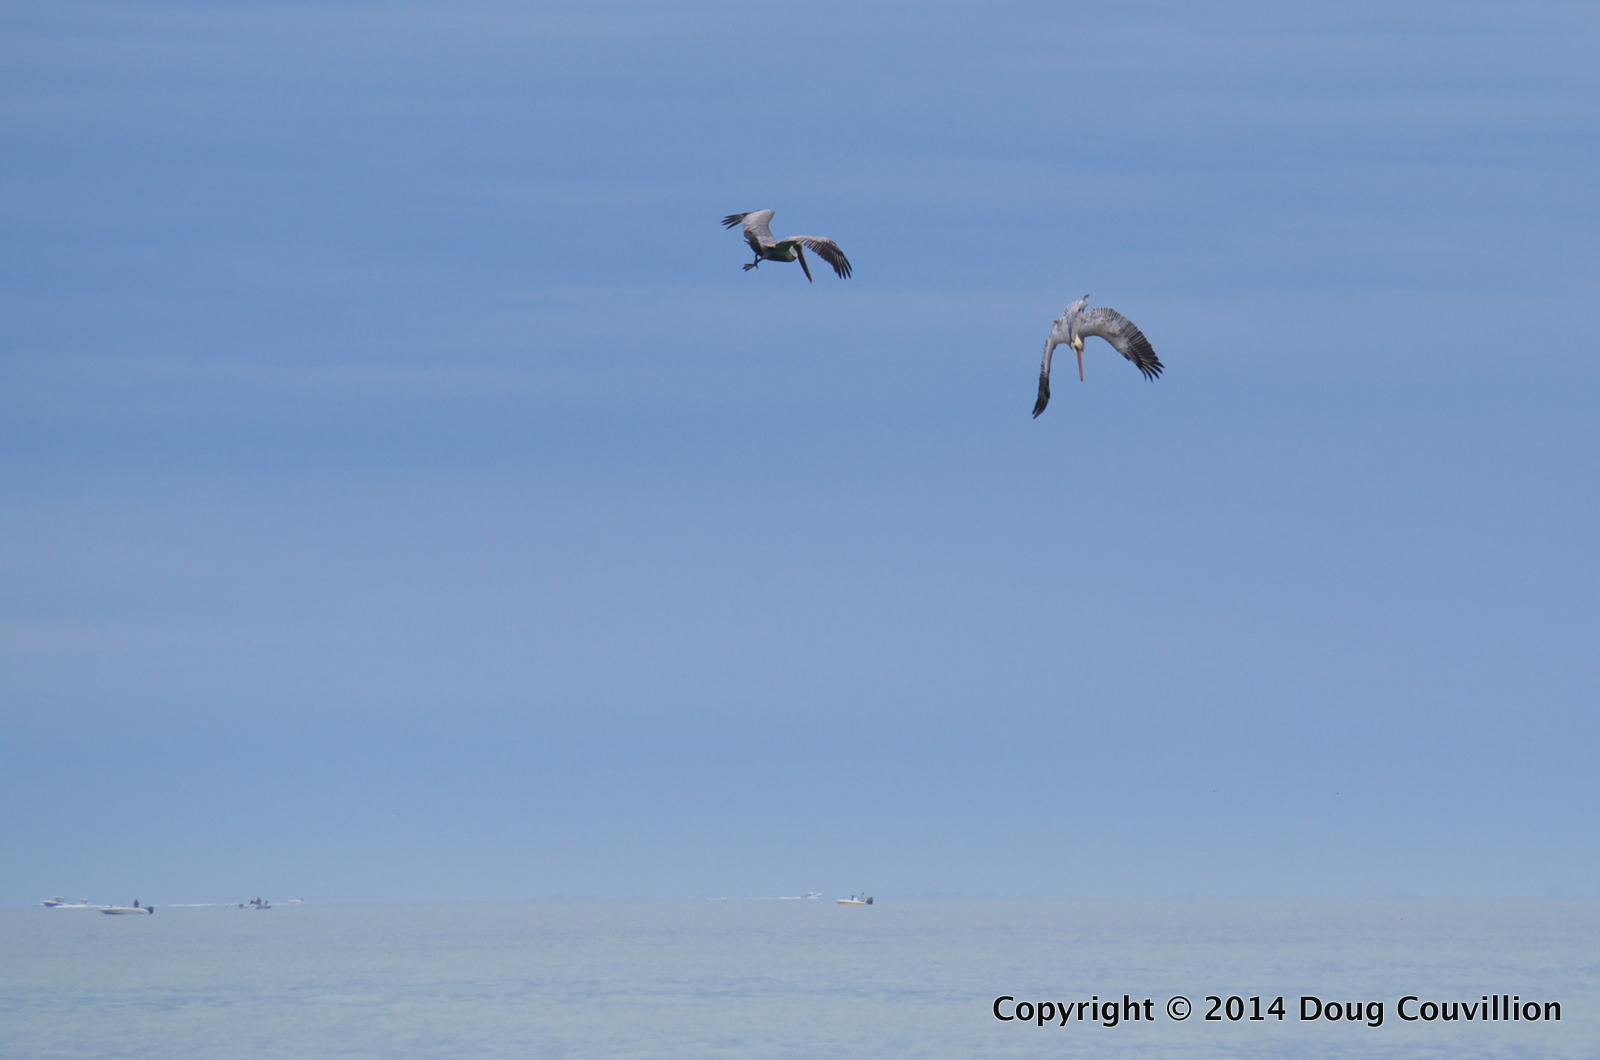 Photograph of two brown pelicans, one of them diving, off the coast of Florida